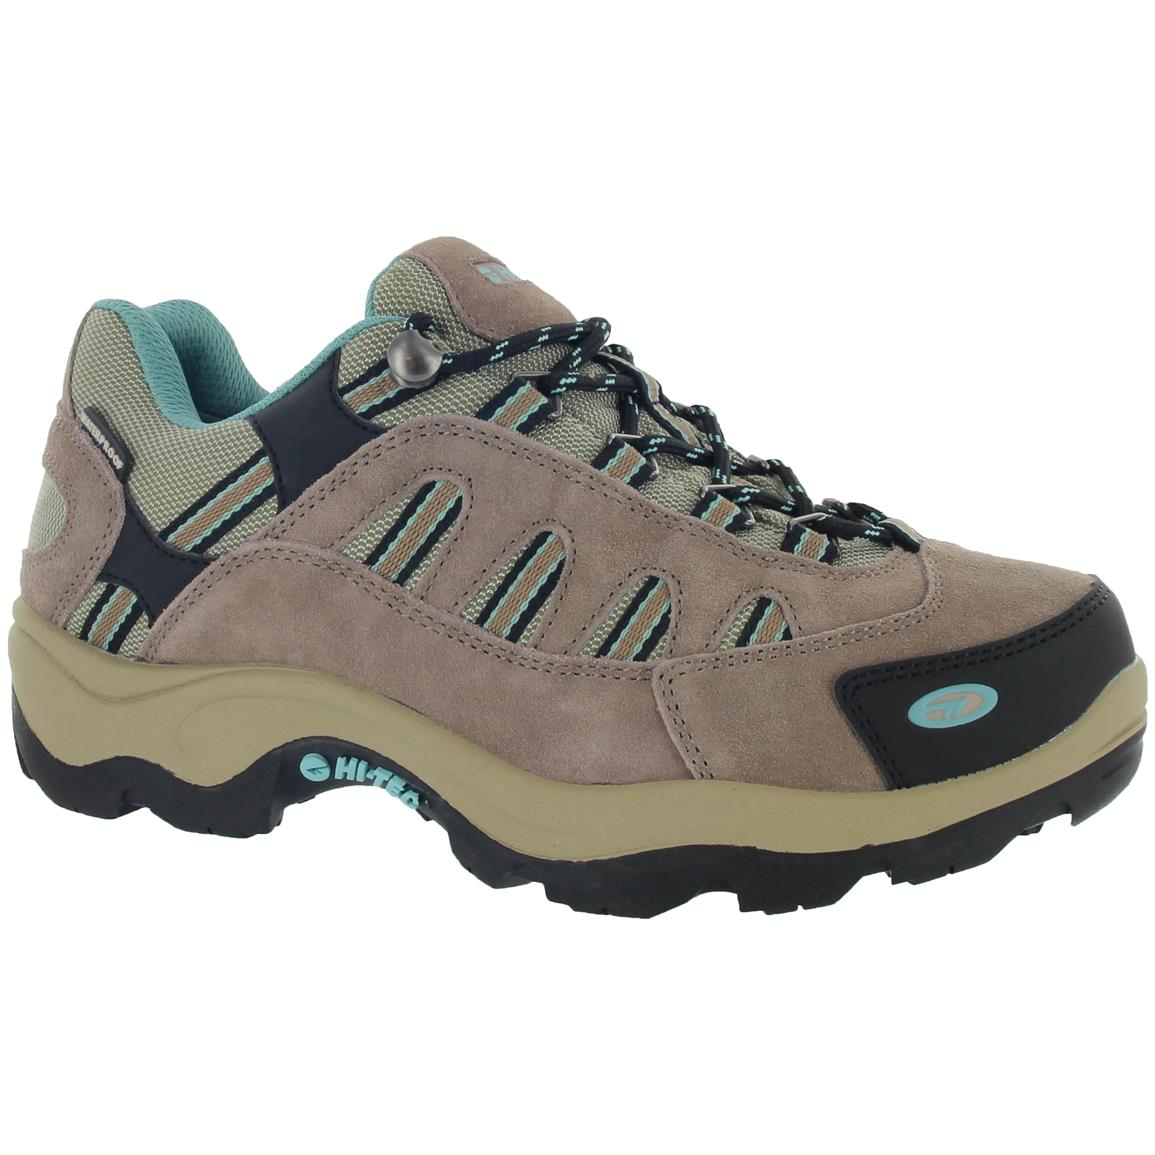 Hi-Tec Bandera Women's Low Hiking Boots, Waterproof, Taupe / Dust